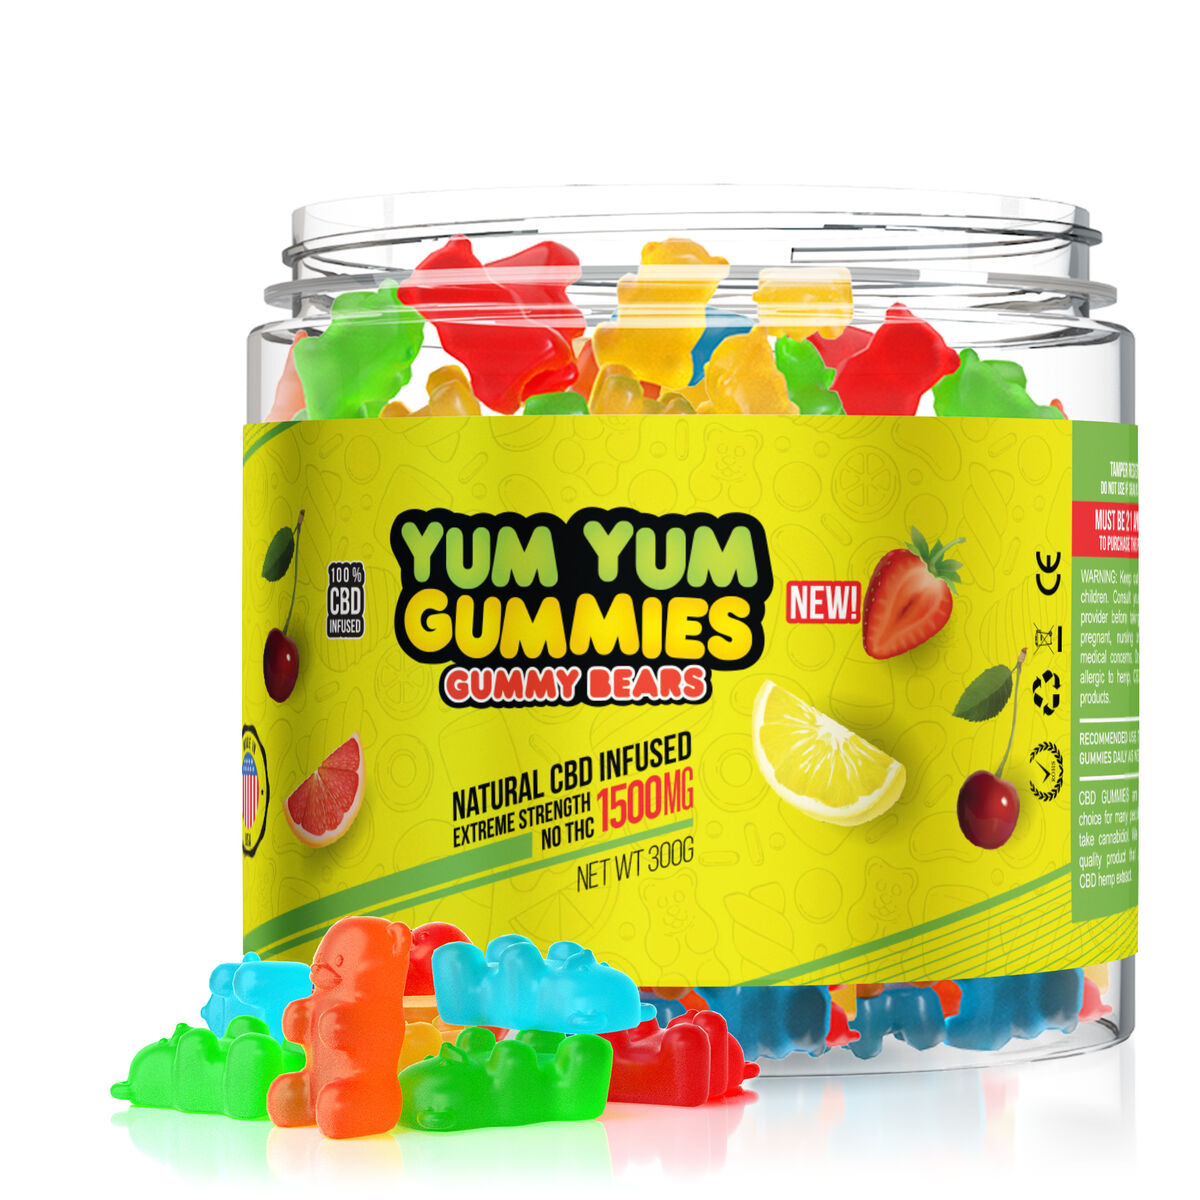 Yum Yum Gummies 1500mg - CBD Infused Gummy Bears